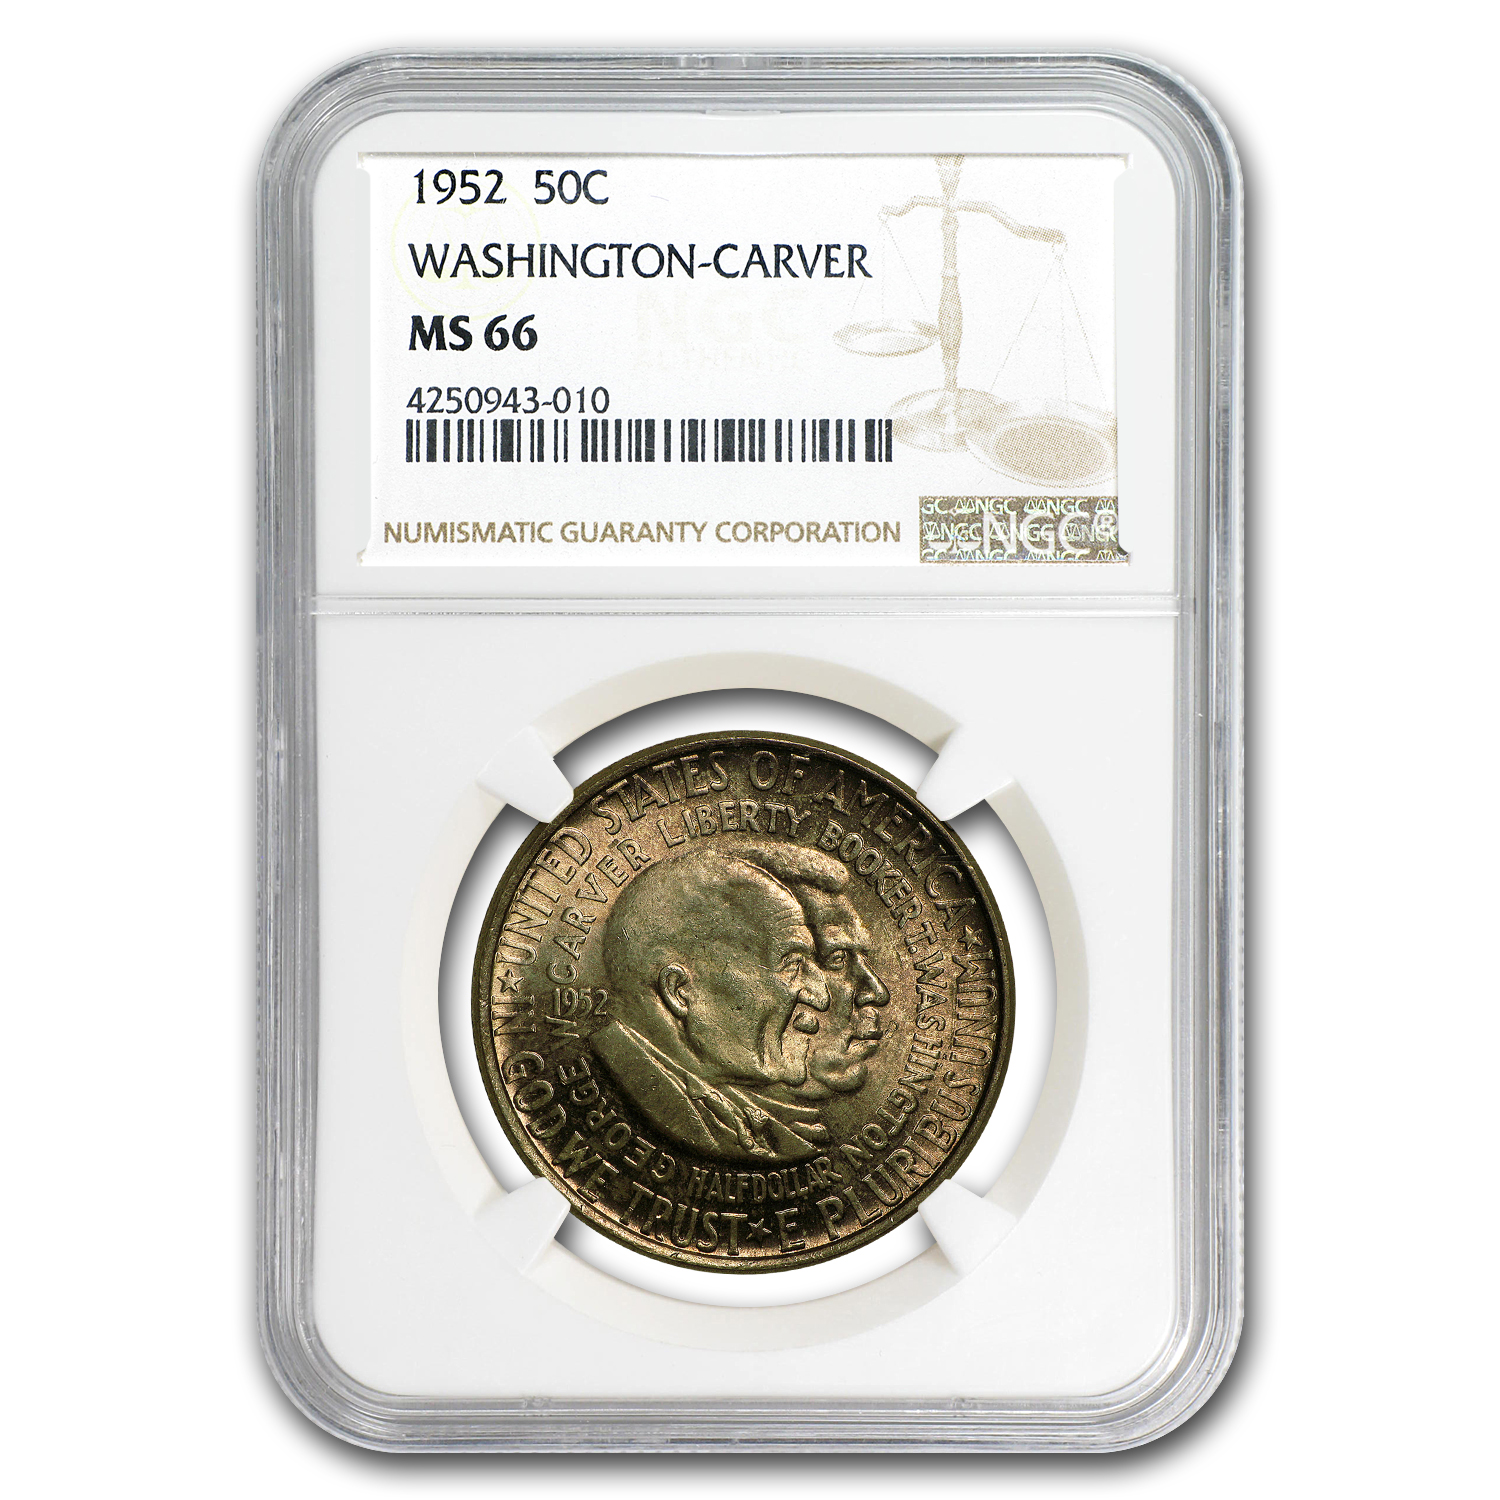 1952 Washington-Carver Half Dollar MS-66 NGC